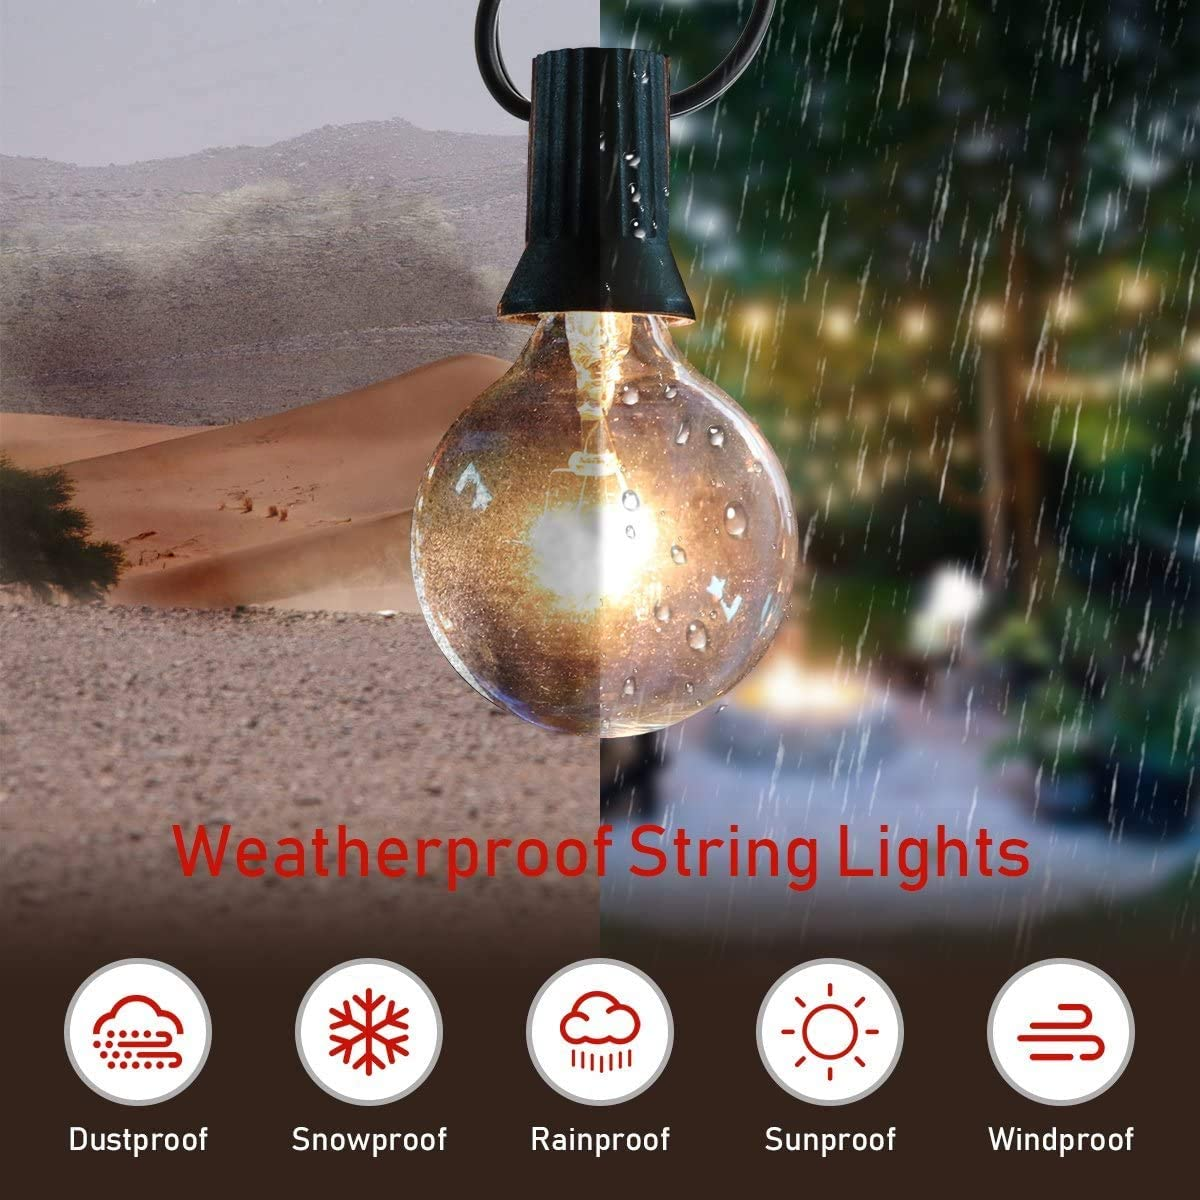 Grezea Outdoor Indoor Globe String Lights with 27 Clear G40 Light Bulbs, Perfect Decor Commercial Lighting for Patio Backyard Garden Wedding Party Tent RV Bedroom Cafe Shop Bistro Market, Warm White